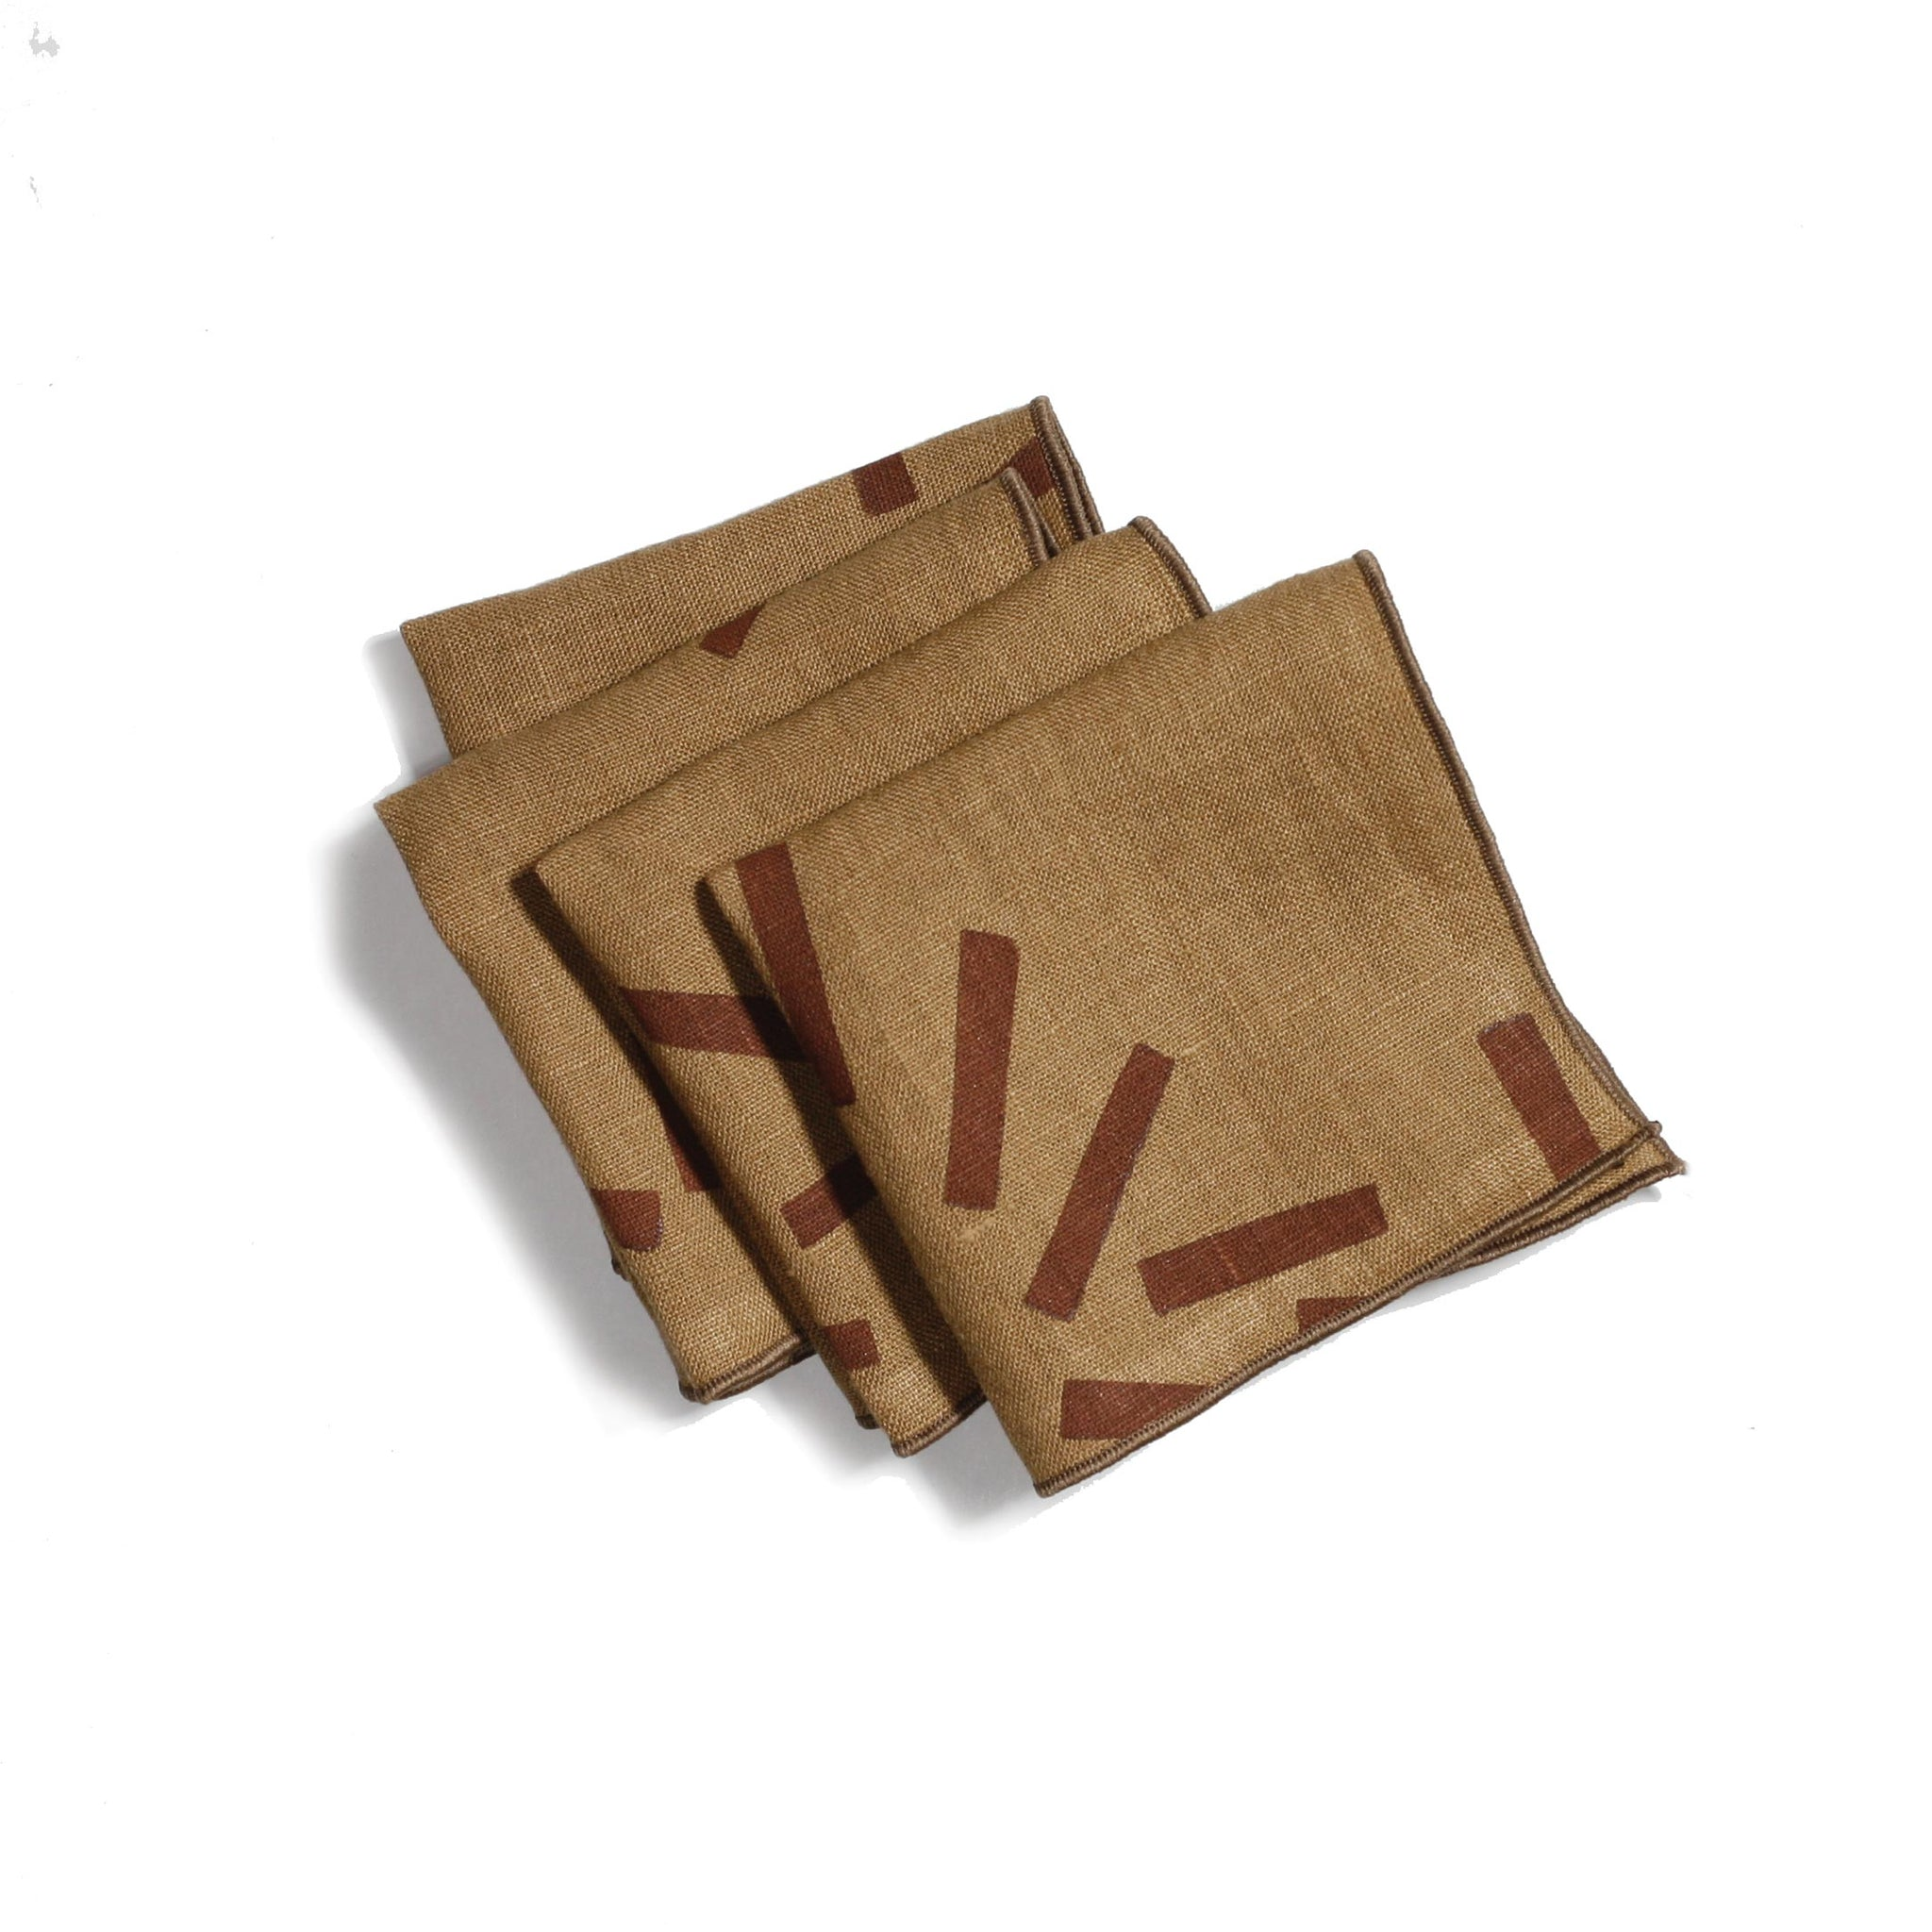 'Toss' Cocktail Napkins - Set of 4